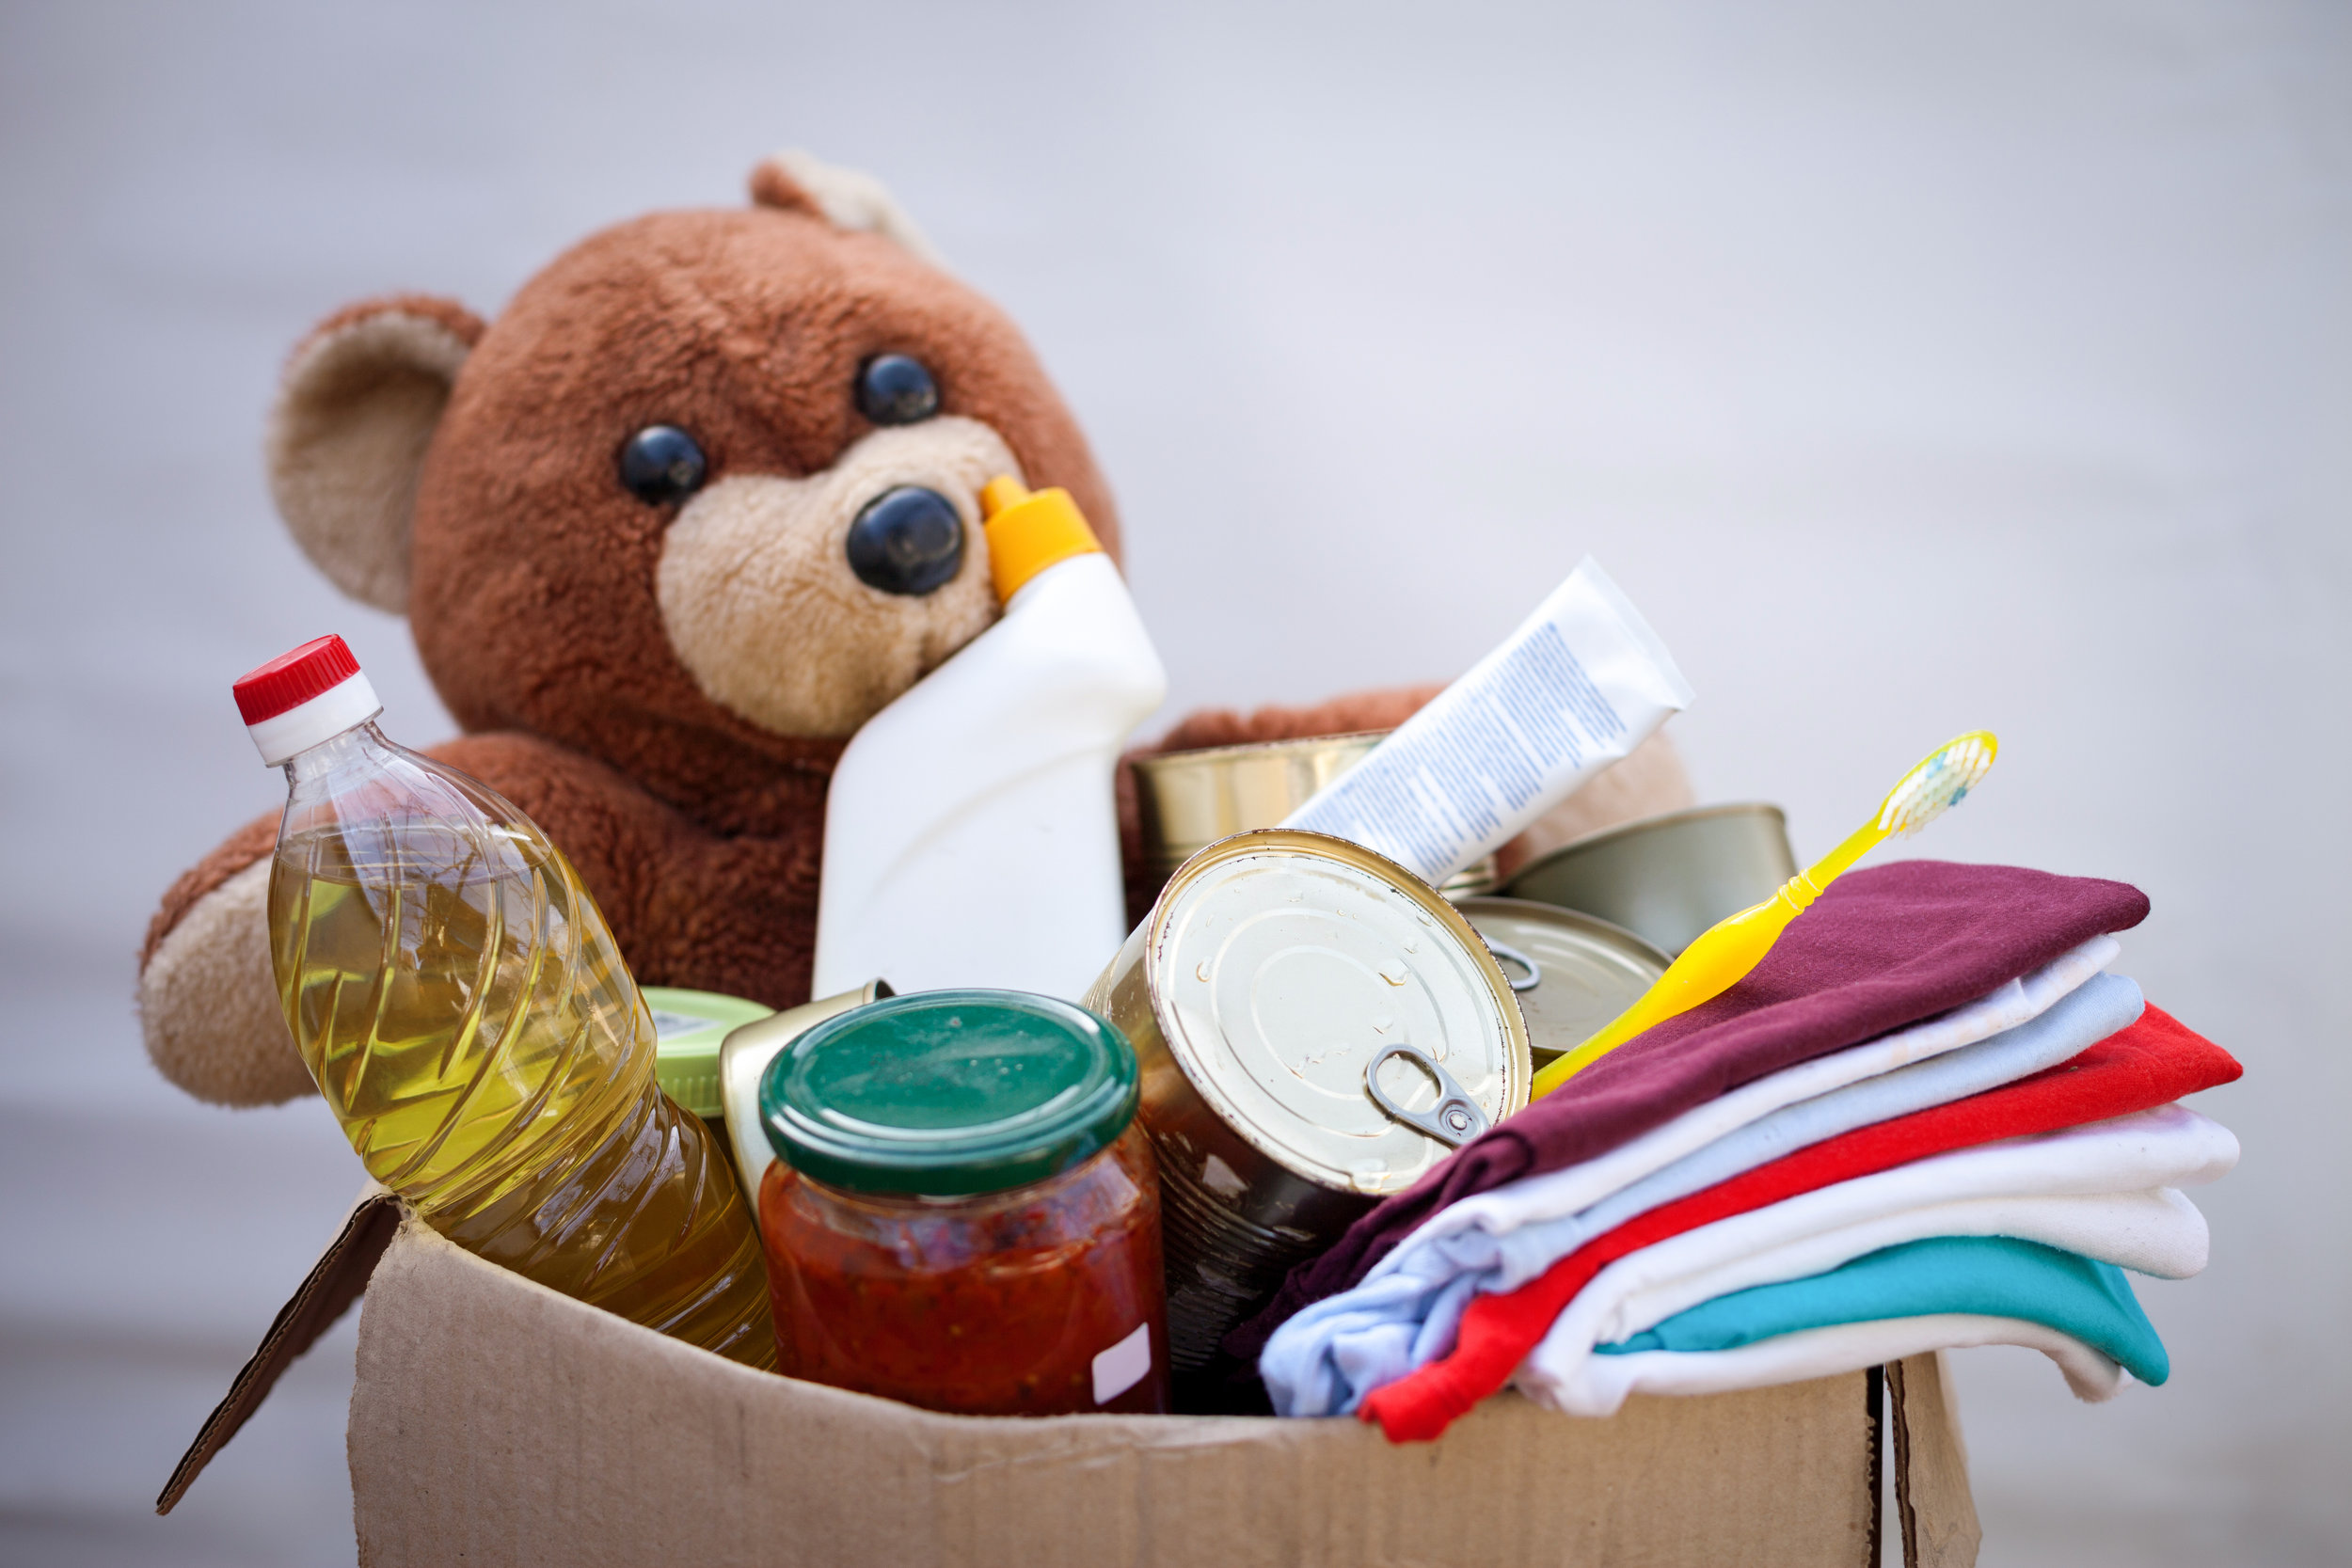 In-kind donations - Bring gently worn clothes, household goods and furniture. We will pick up large donations anywhere in Shiawassee or Genesee Counties.